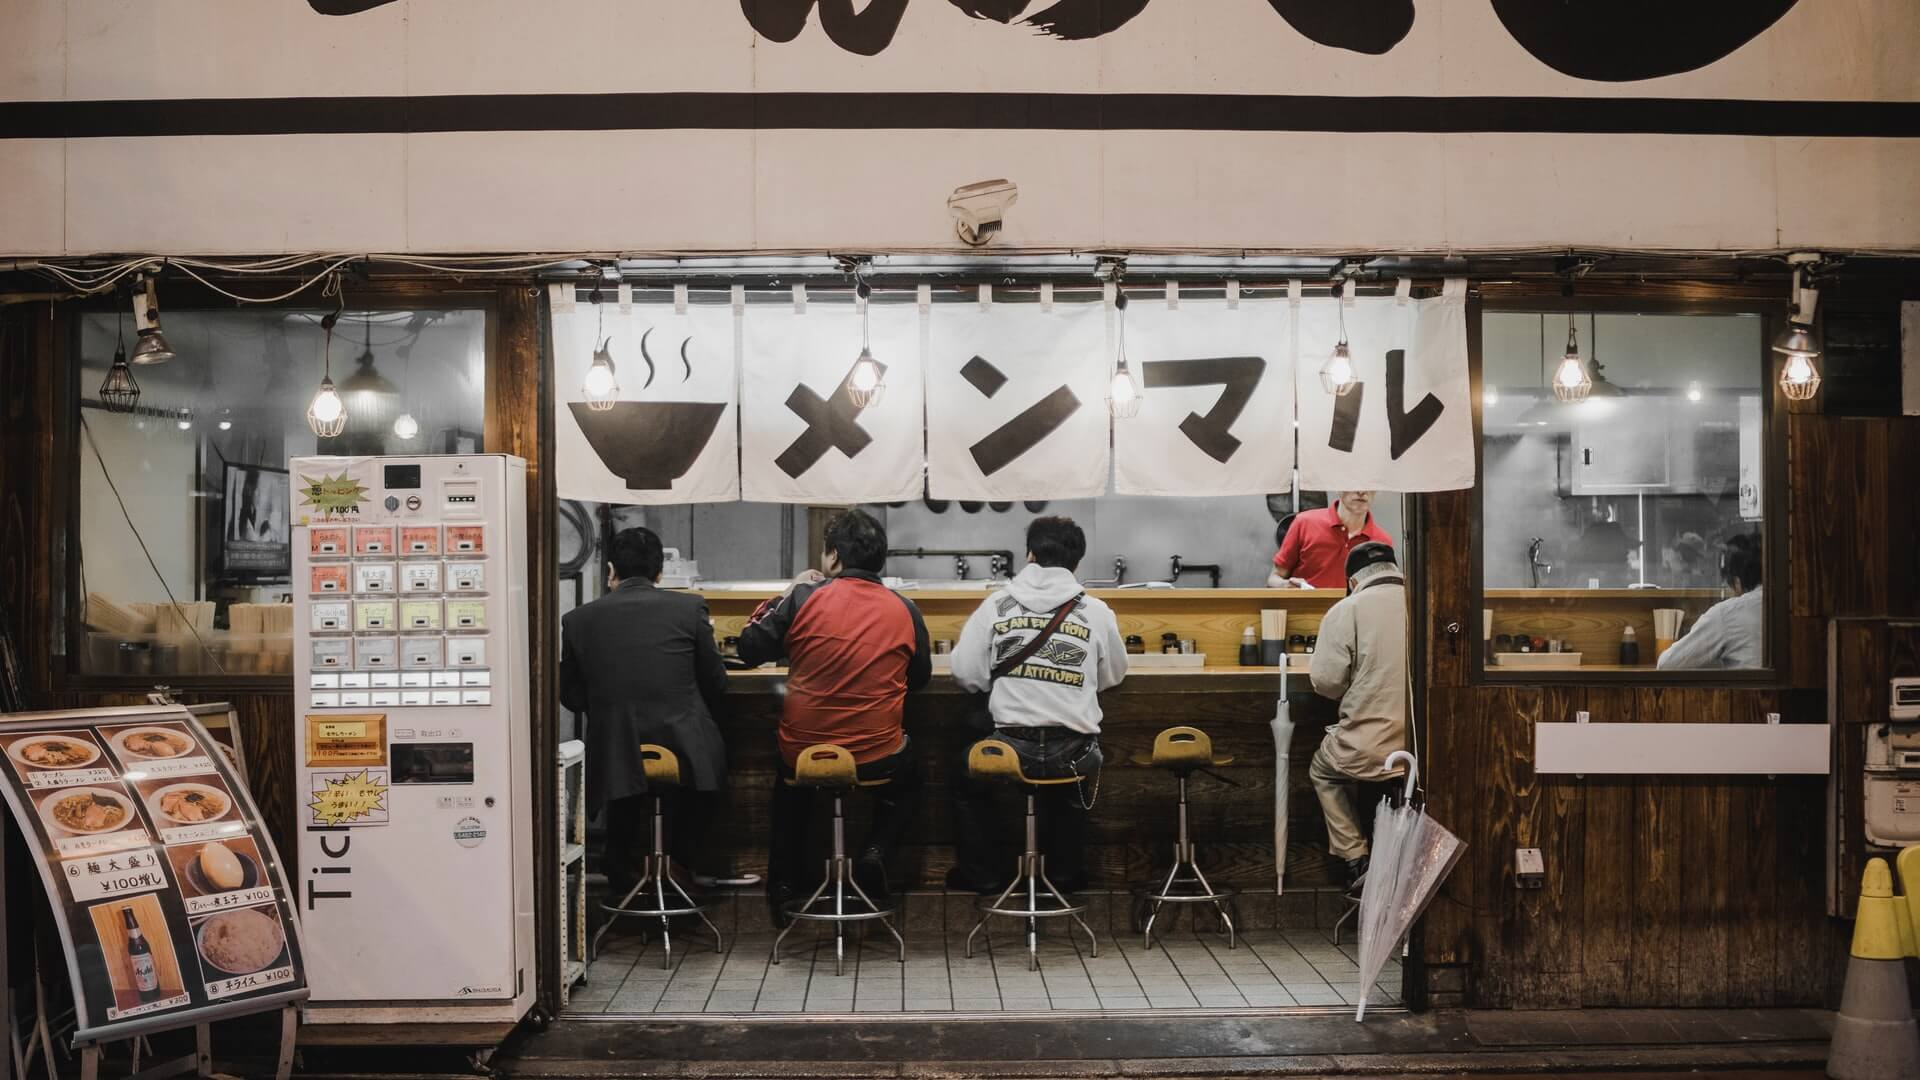 A late-night ramen bar serving food to the nightlife in Tokyo